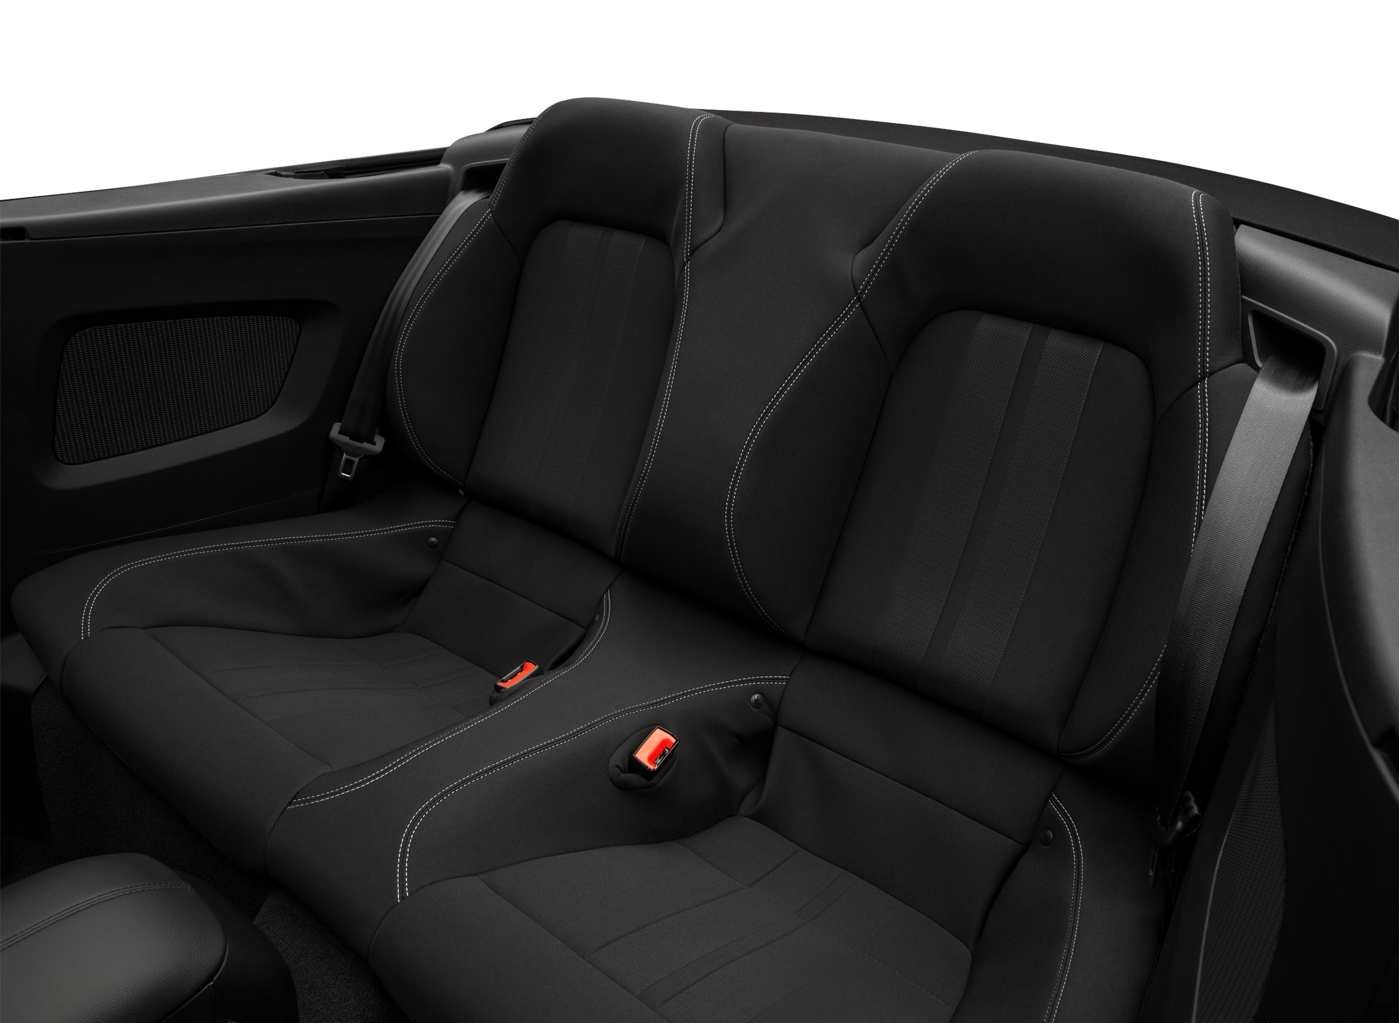 2019 Ford Mustang Ecoboost Rear Seats